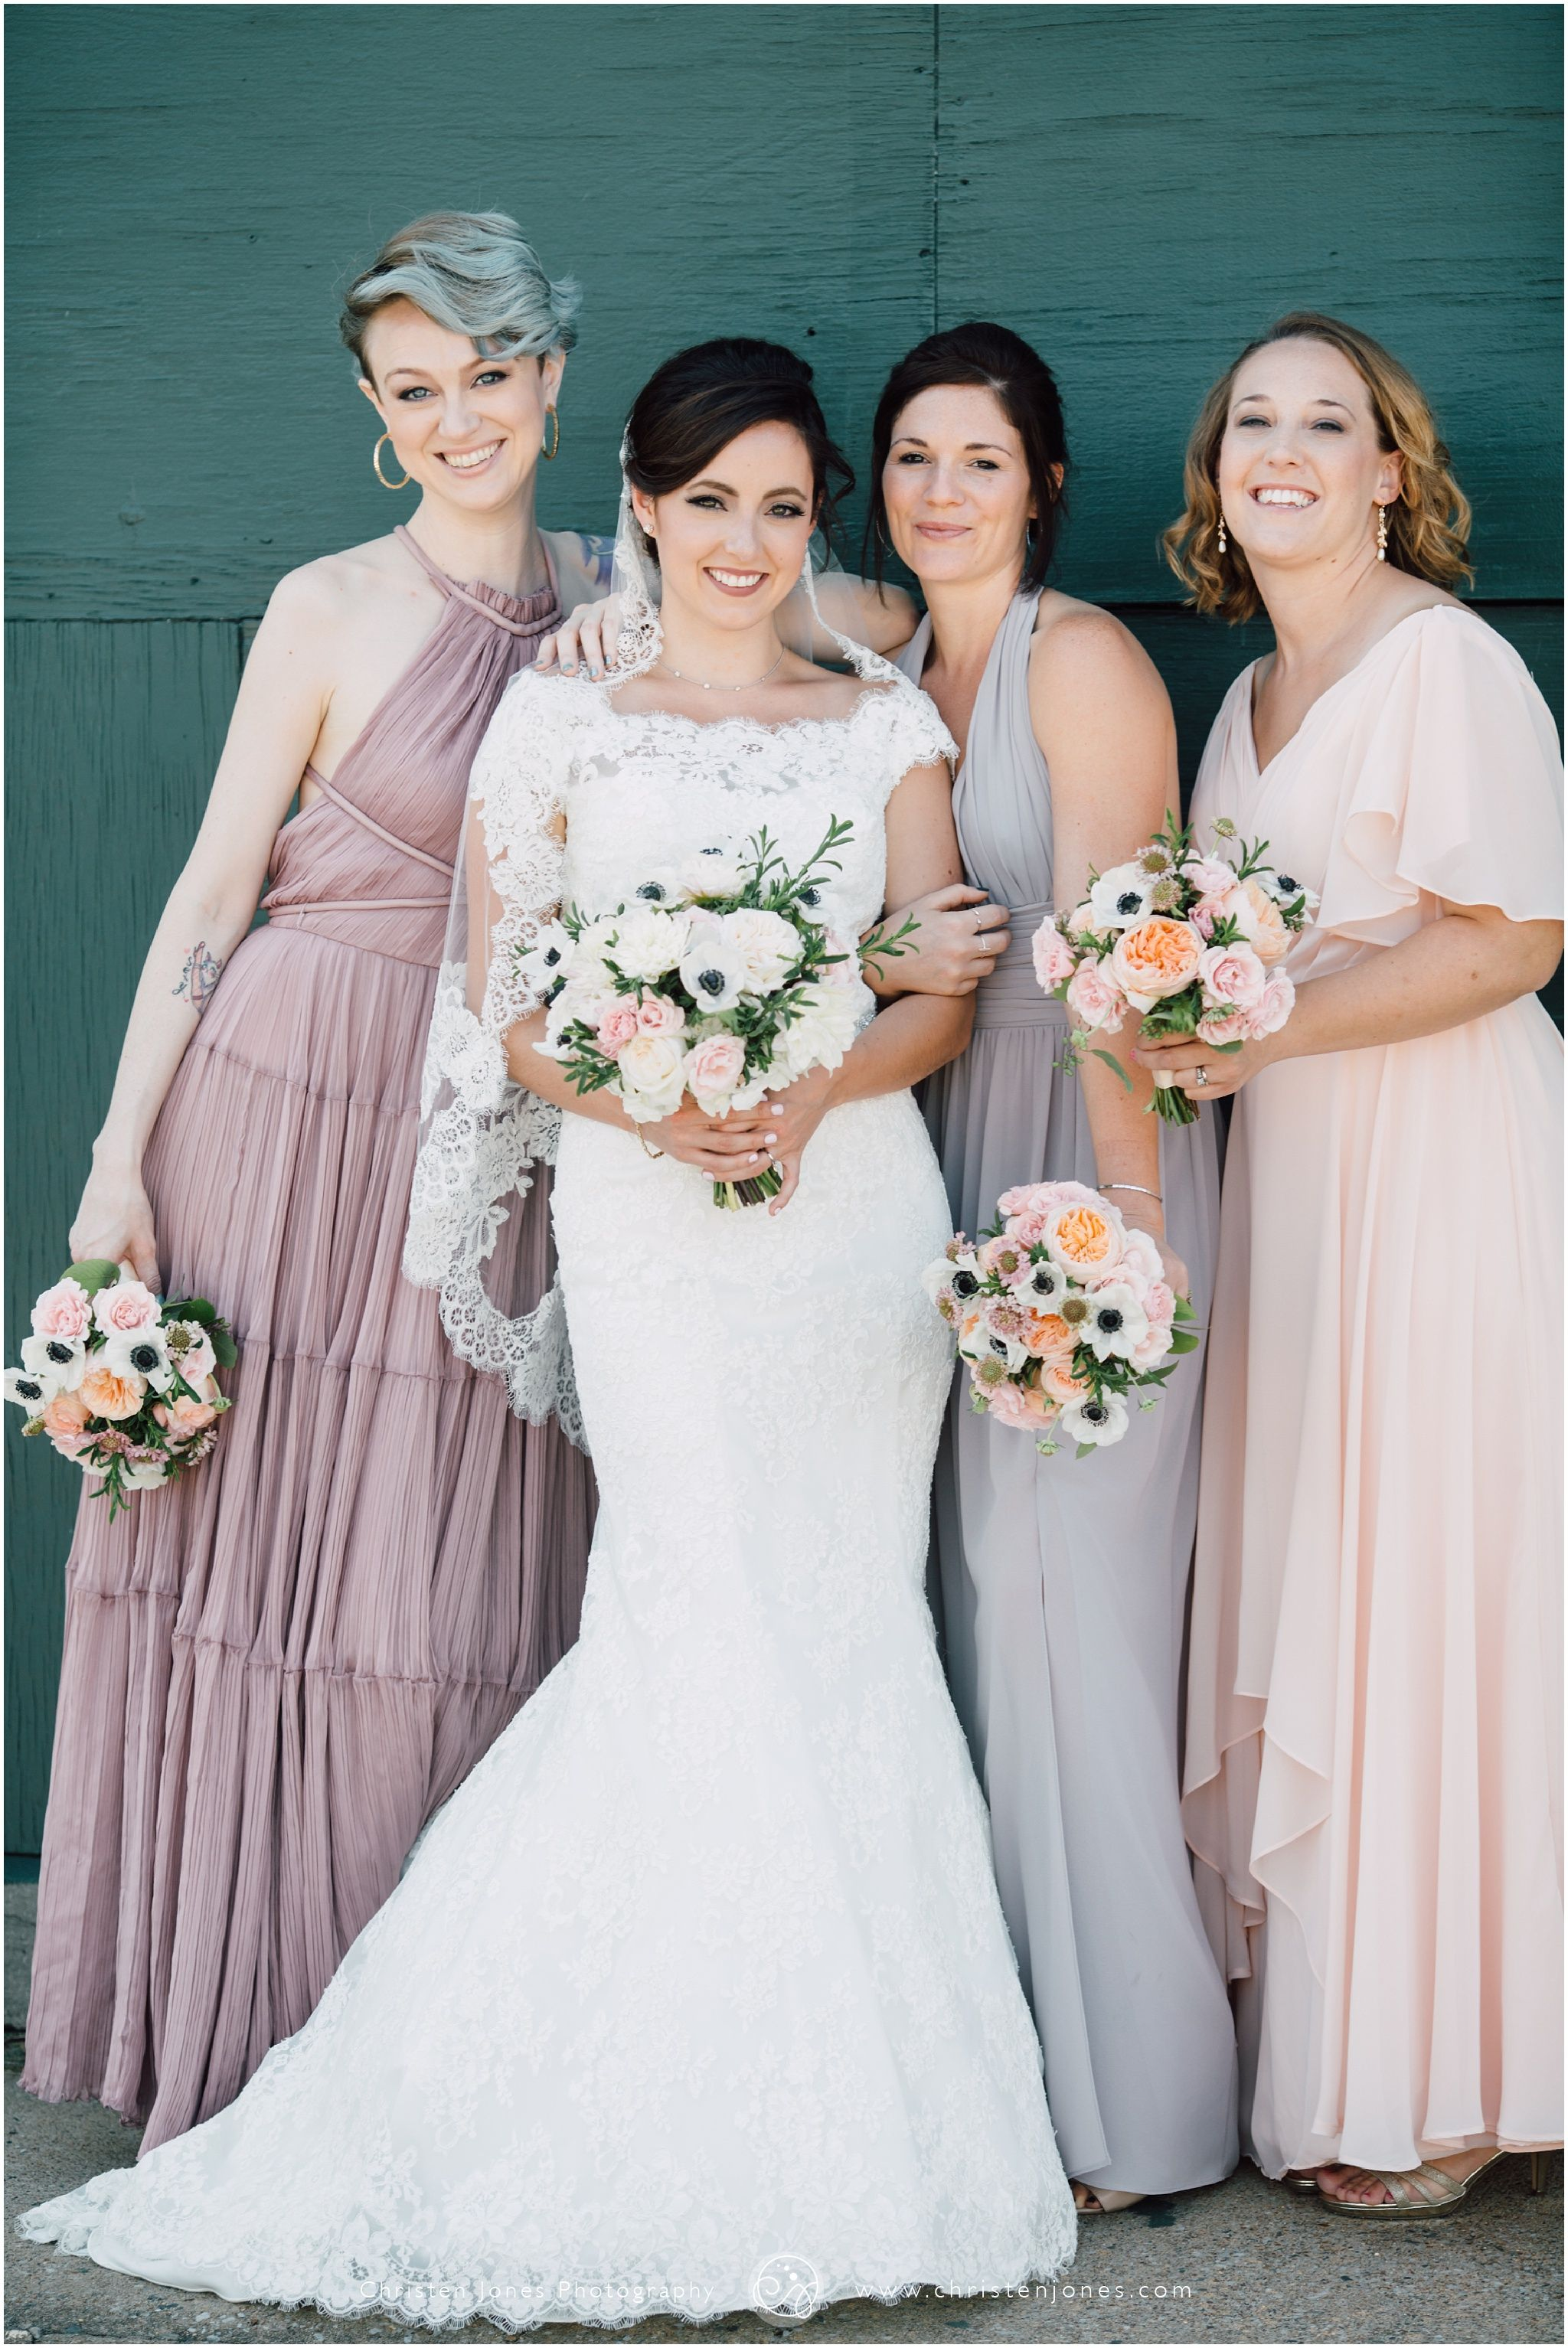 Lace veil bridal wedding party colors bridesmaid colors lace veil bridal wedding party colors bridesmaid colors pastel rose grey ombrellifo Gallery